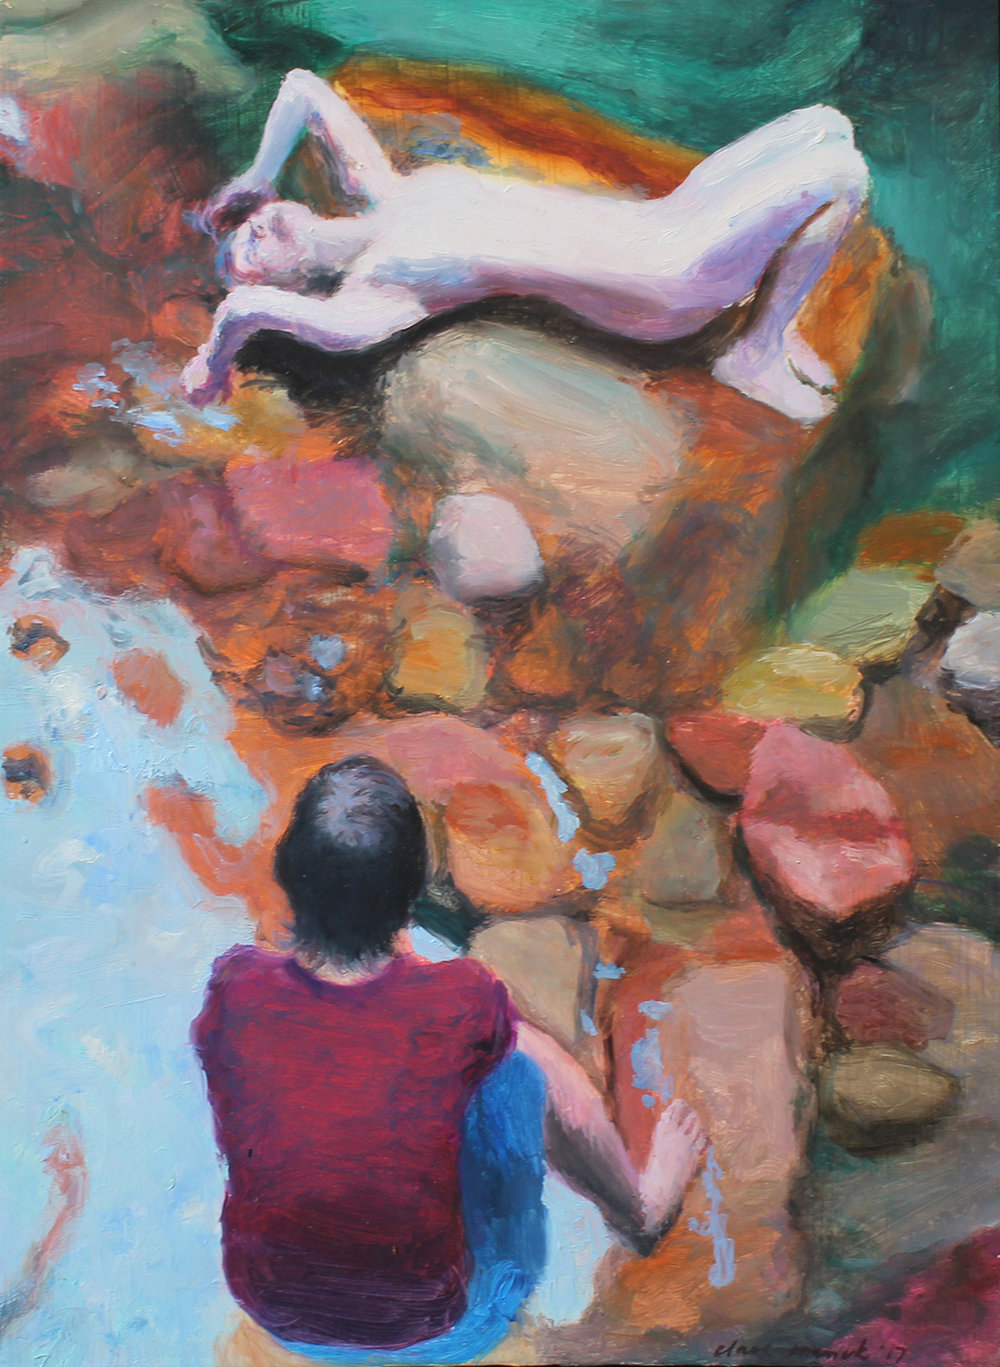 Clare Menck  Lovers locked in an exchange of gaze & play  Oil on aluminium  30.5 x 22 cm